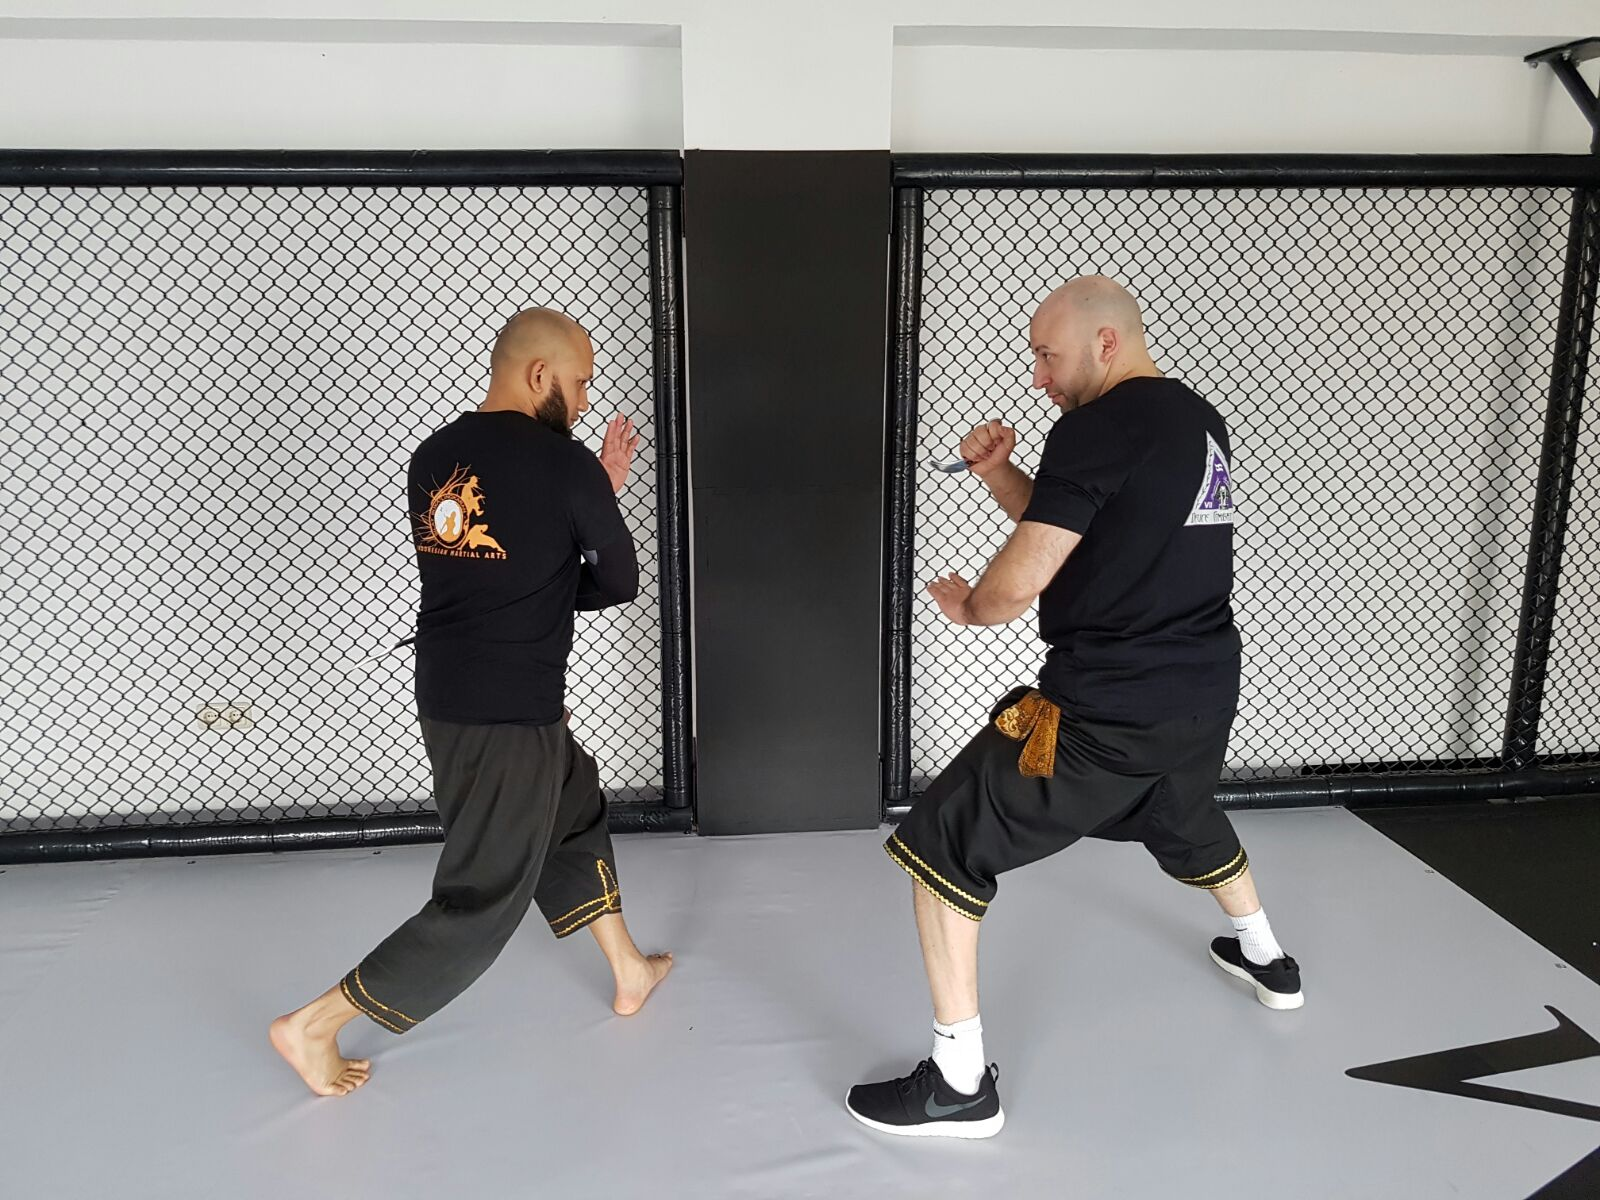 April 1016 : Privat Training/Fortbildung  with Ash Miah einem der Top SBL Silat Trainer Londons (UK)